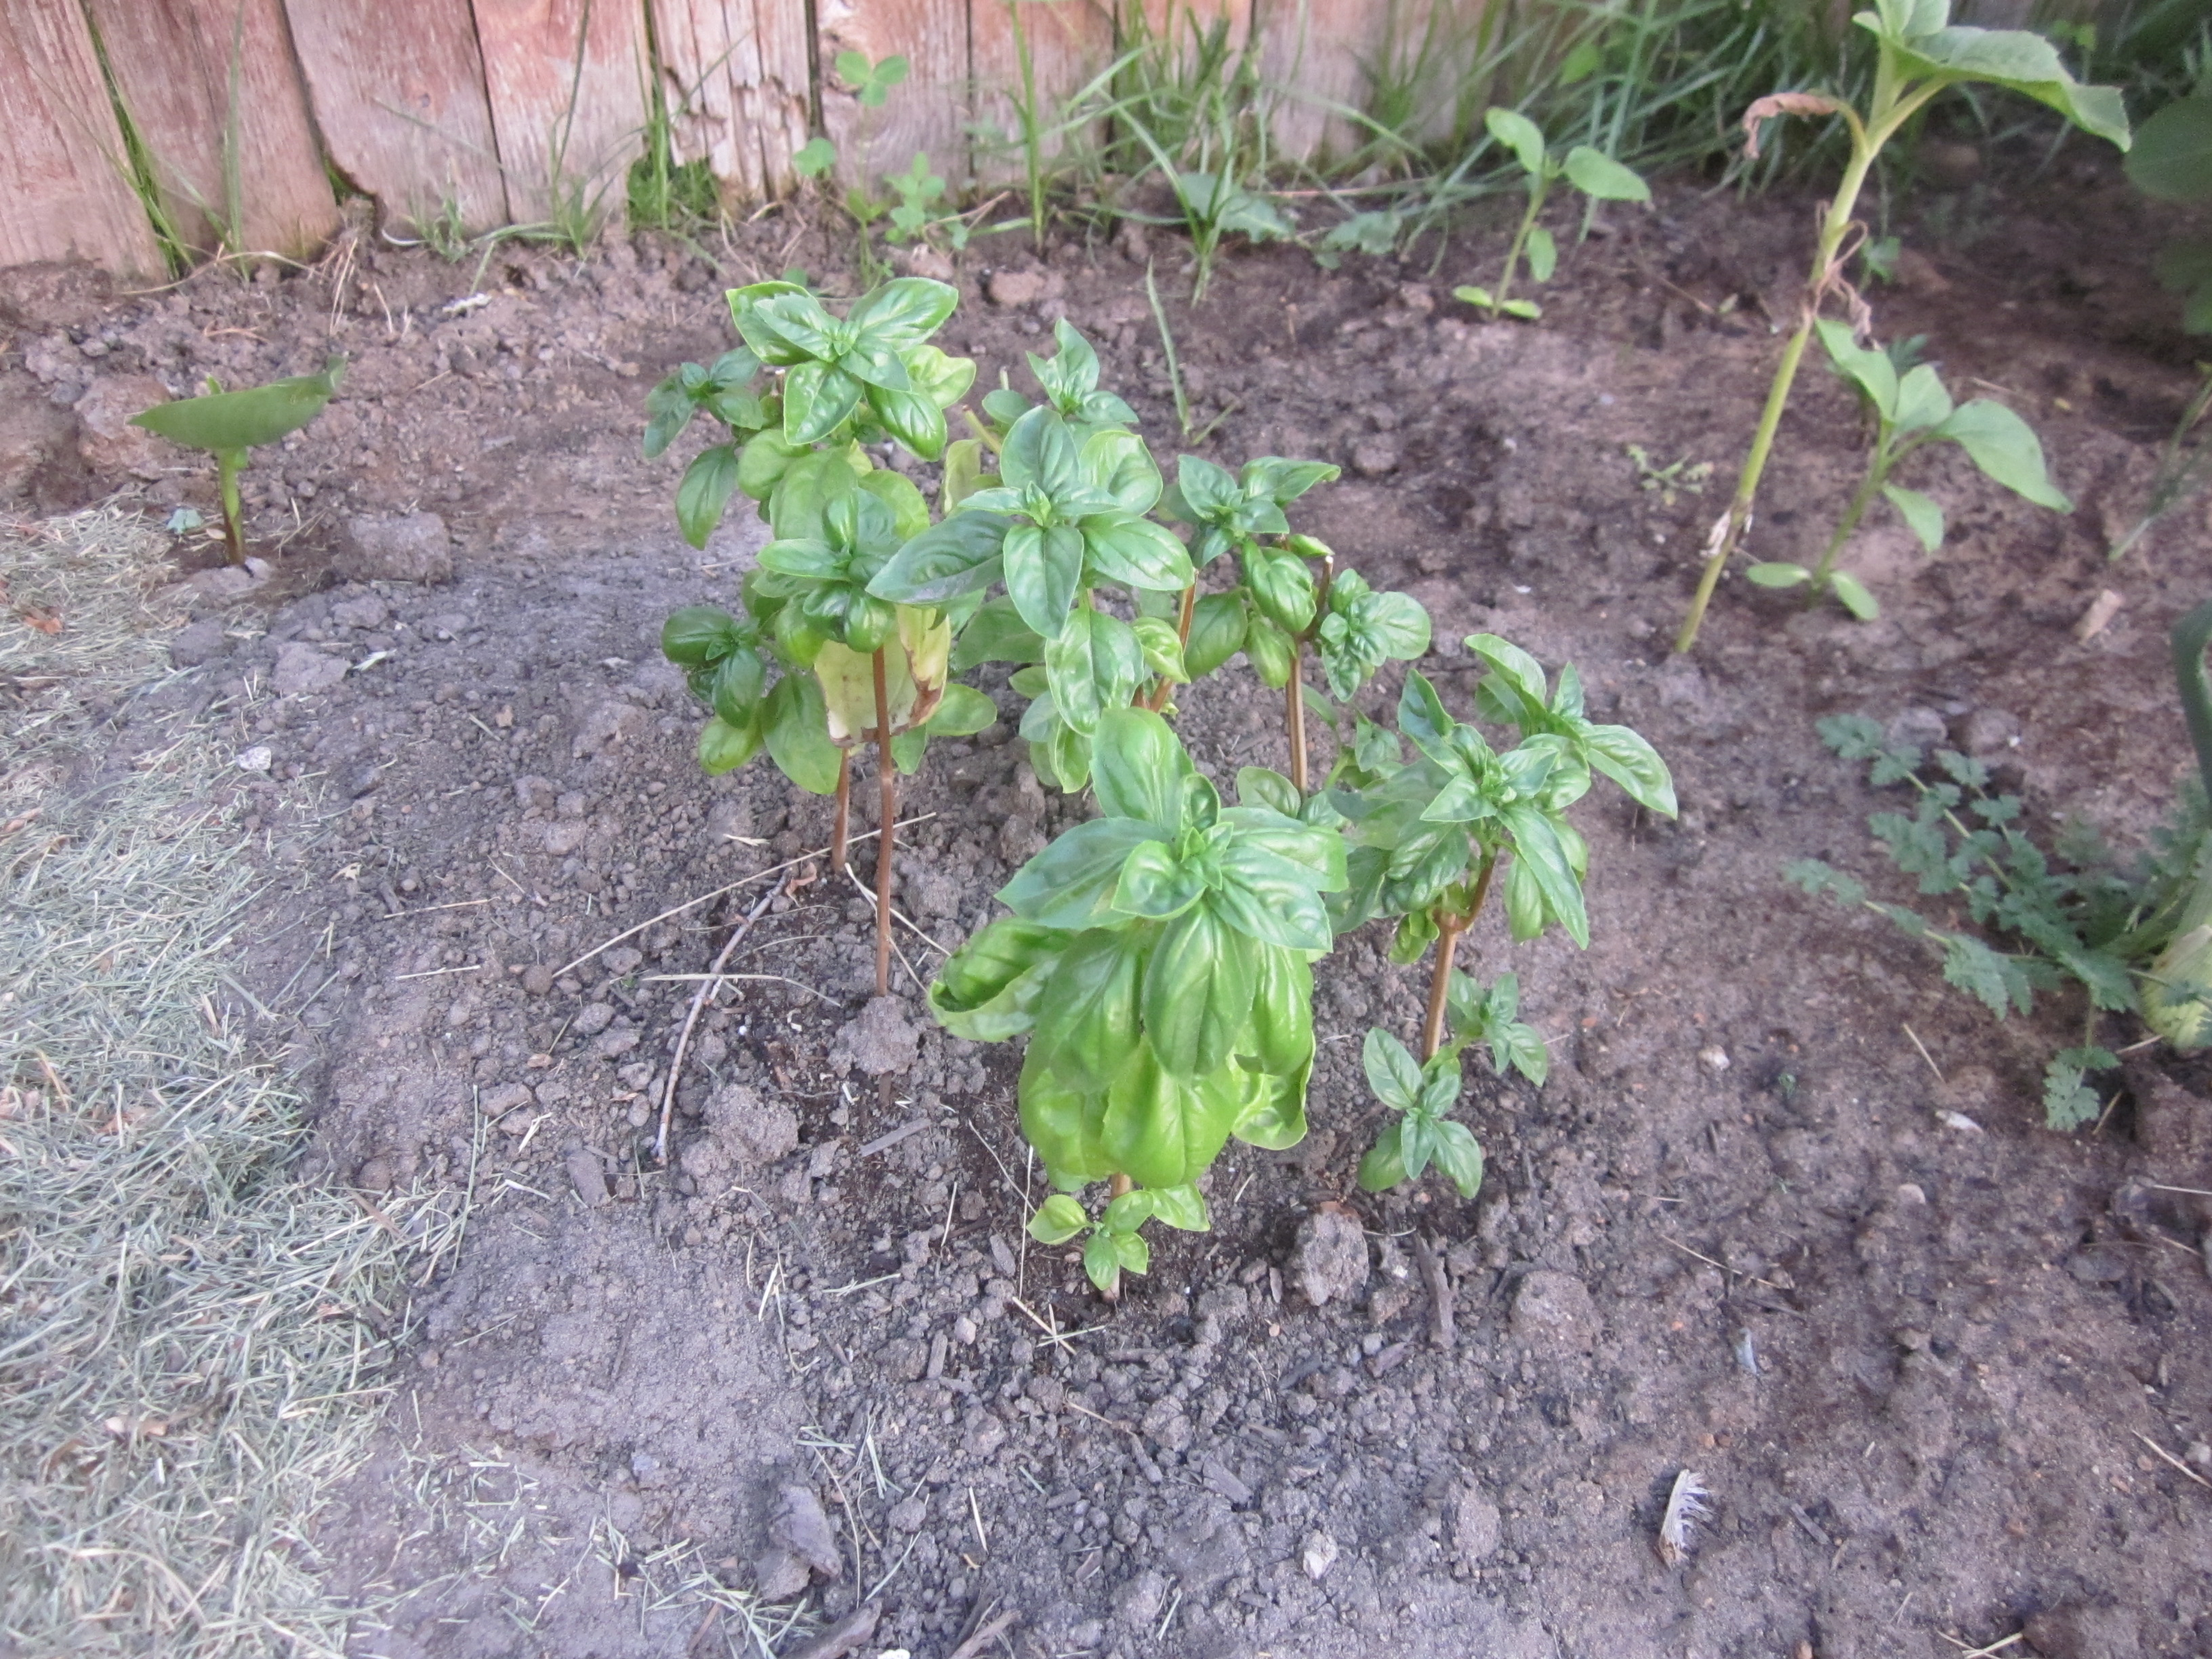 Here's the basil after transplanting it to my garden from the grow light